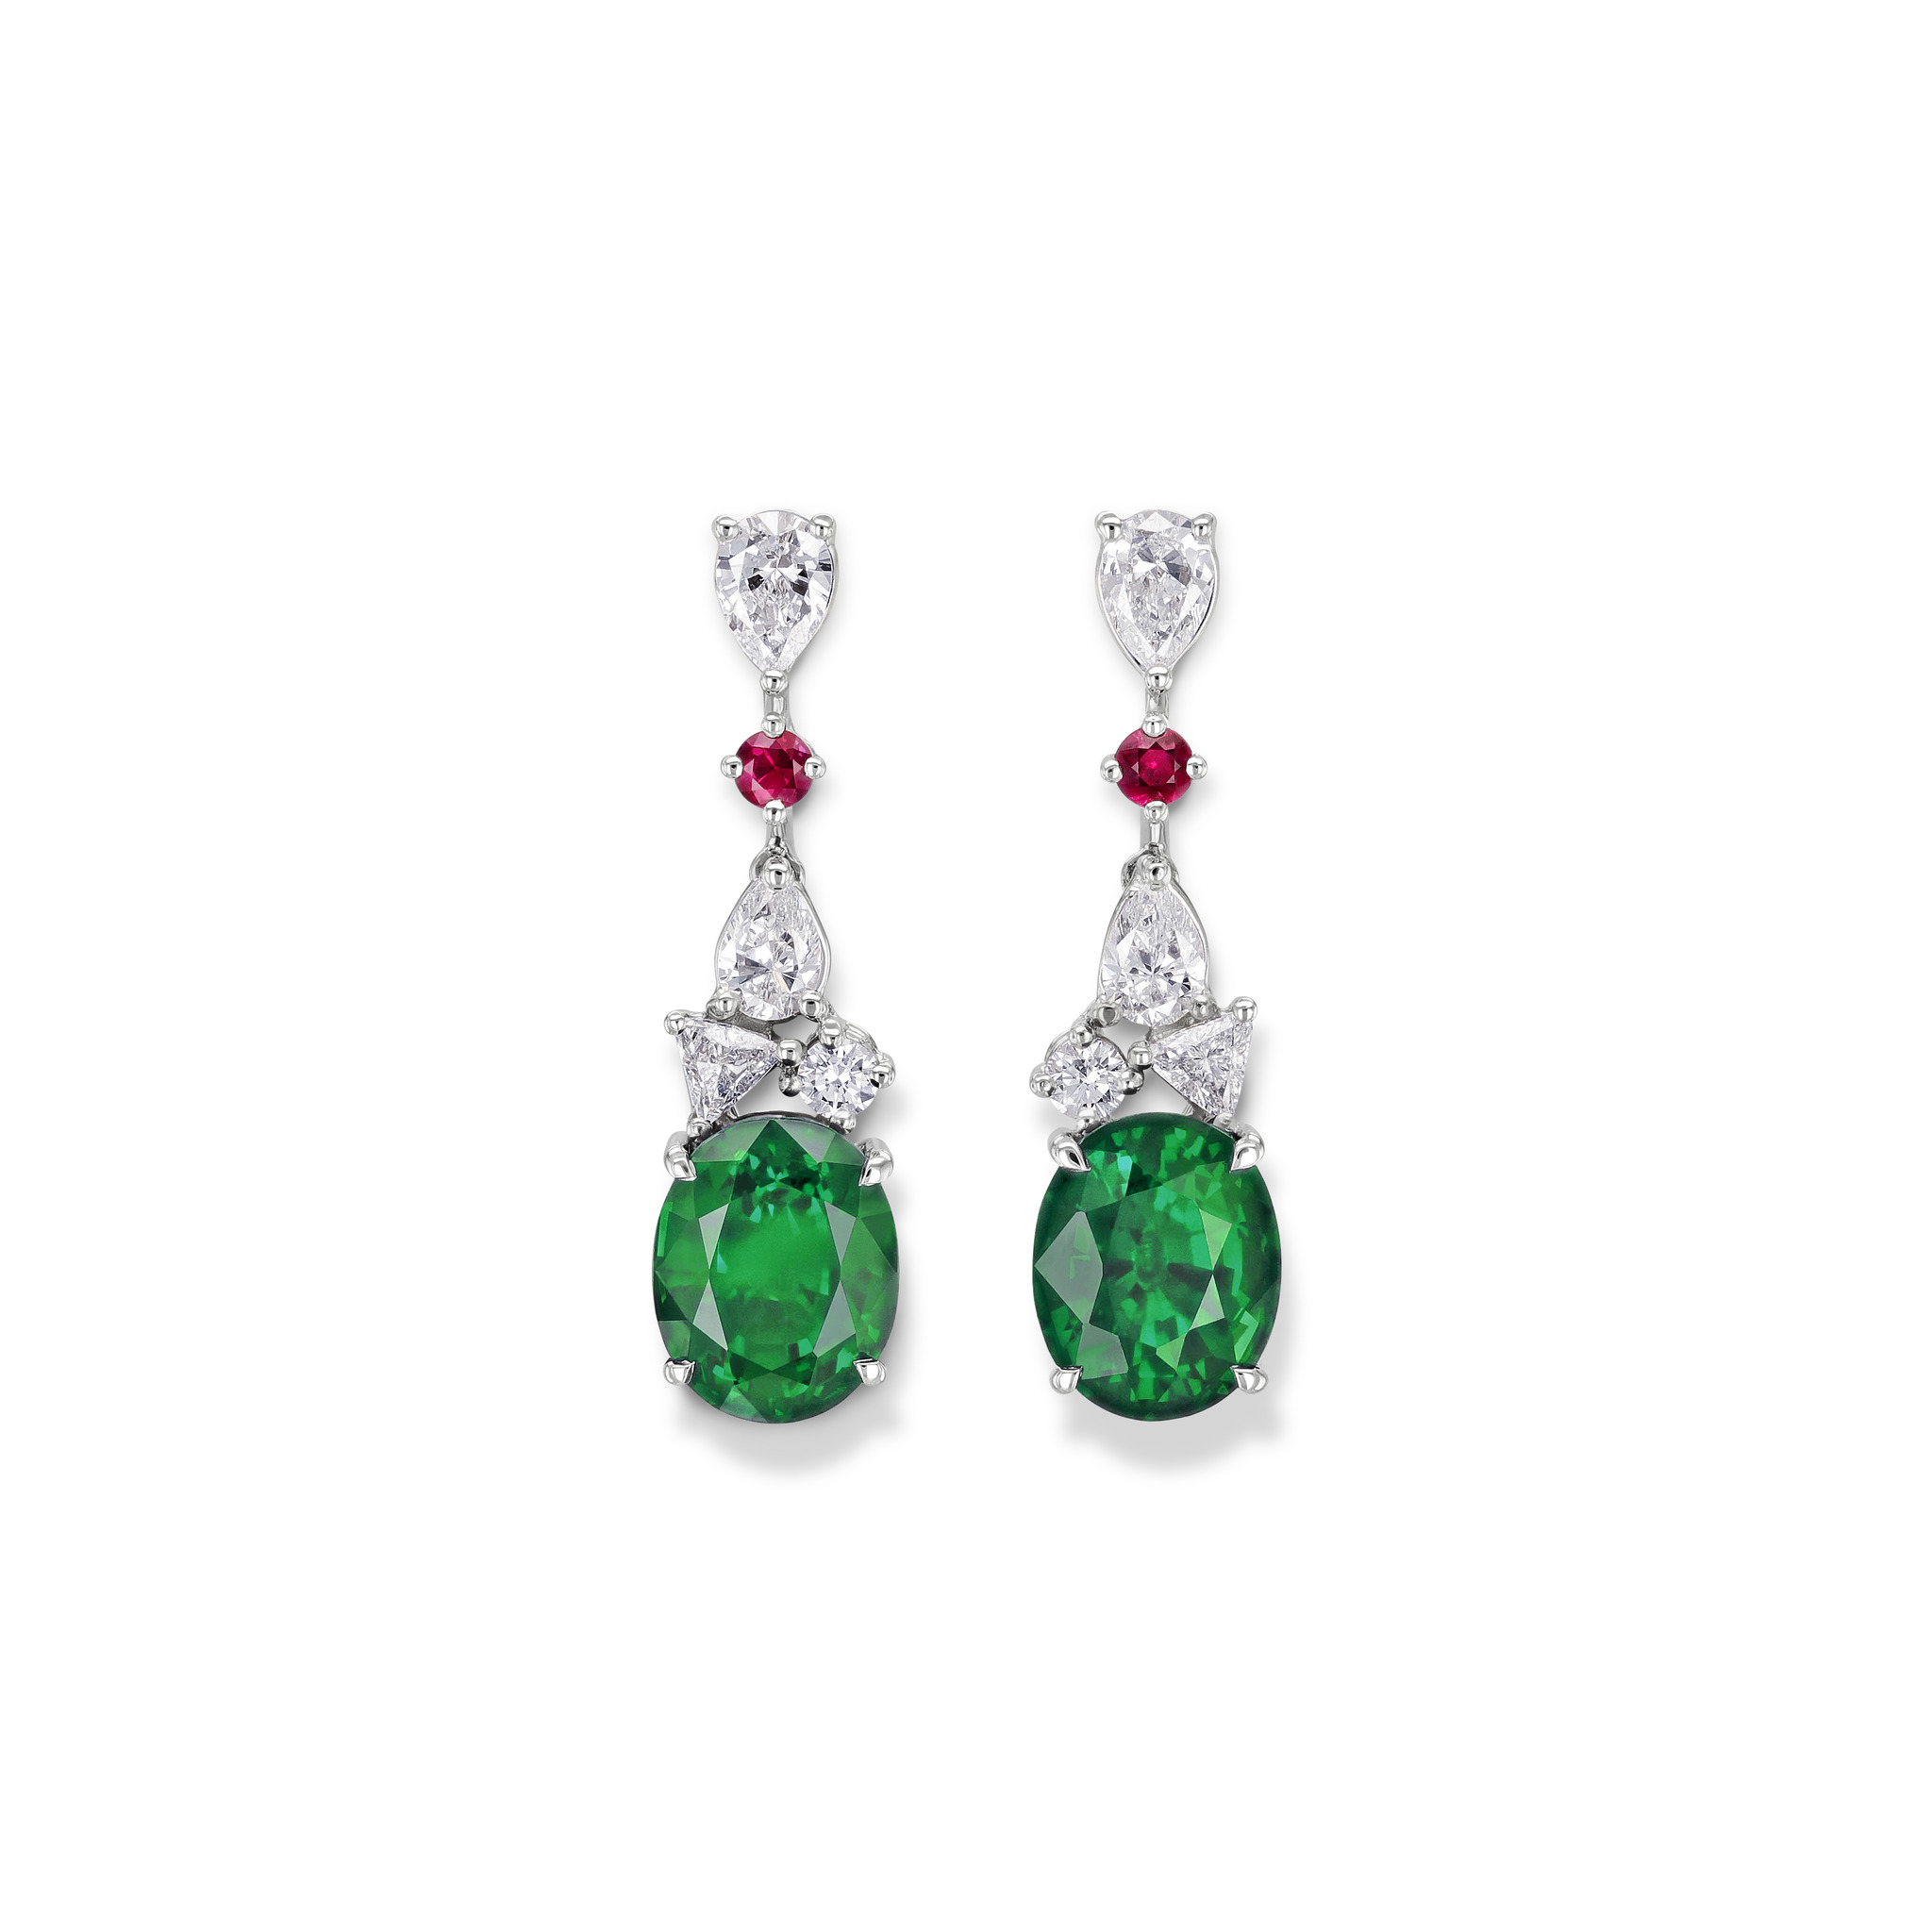 Earrings with emeralds